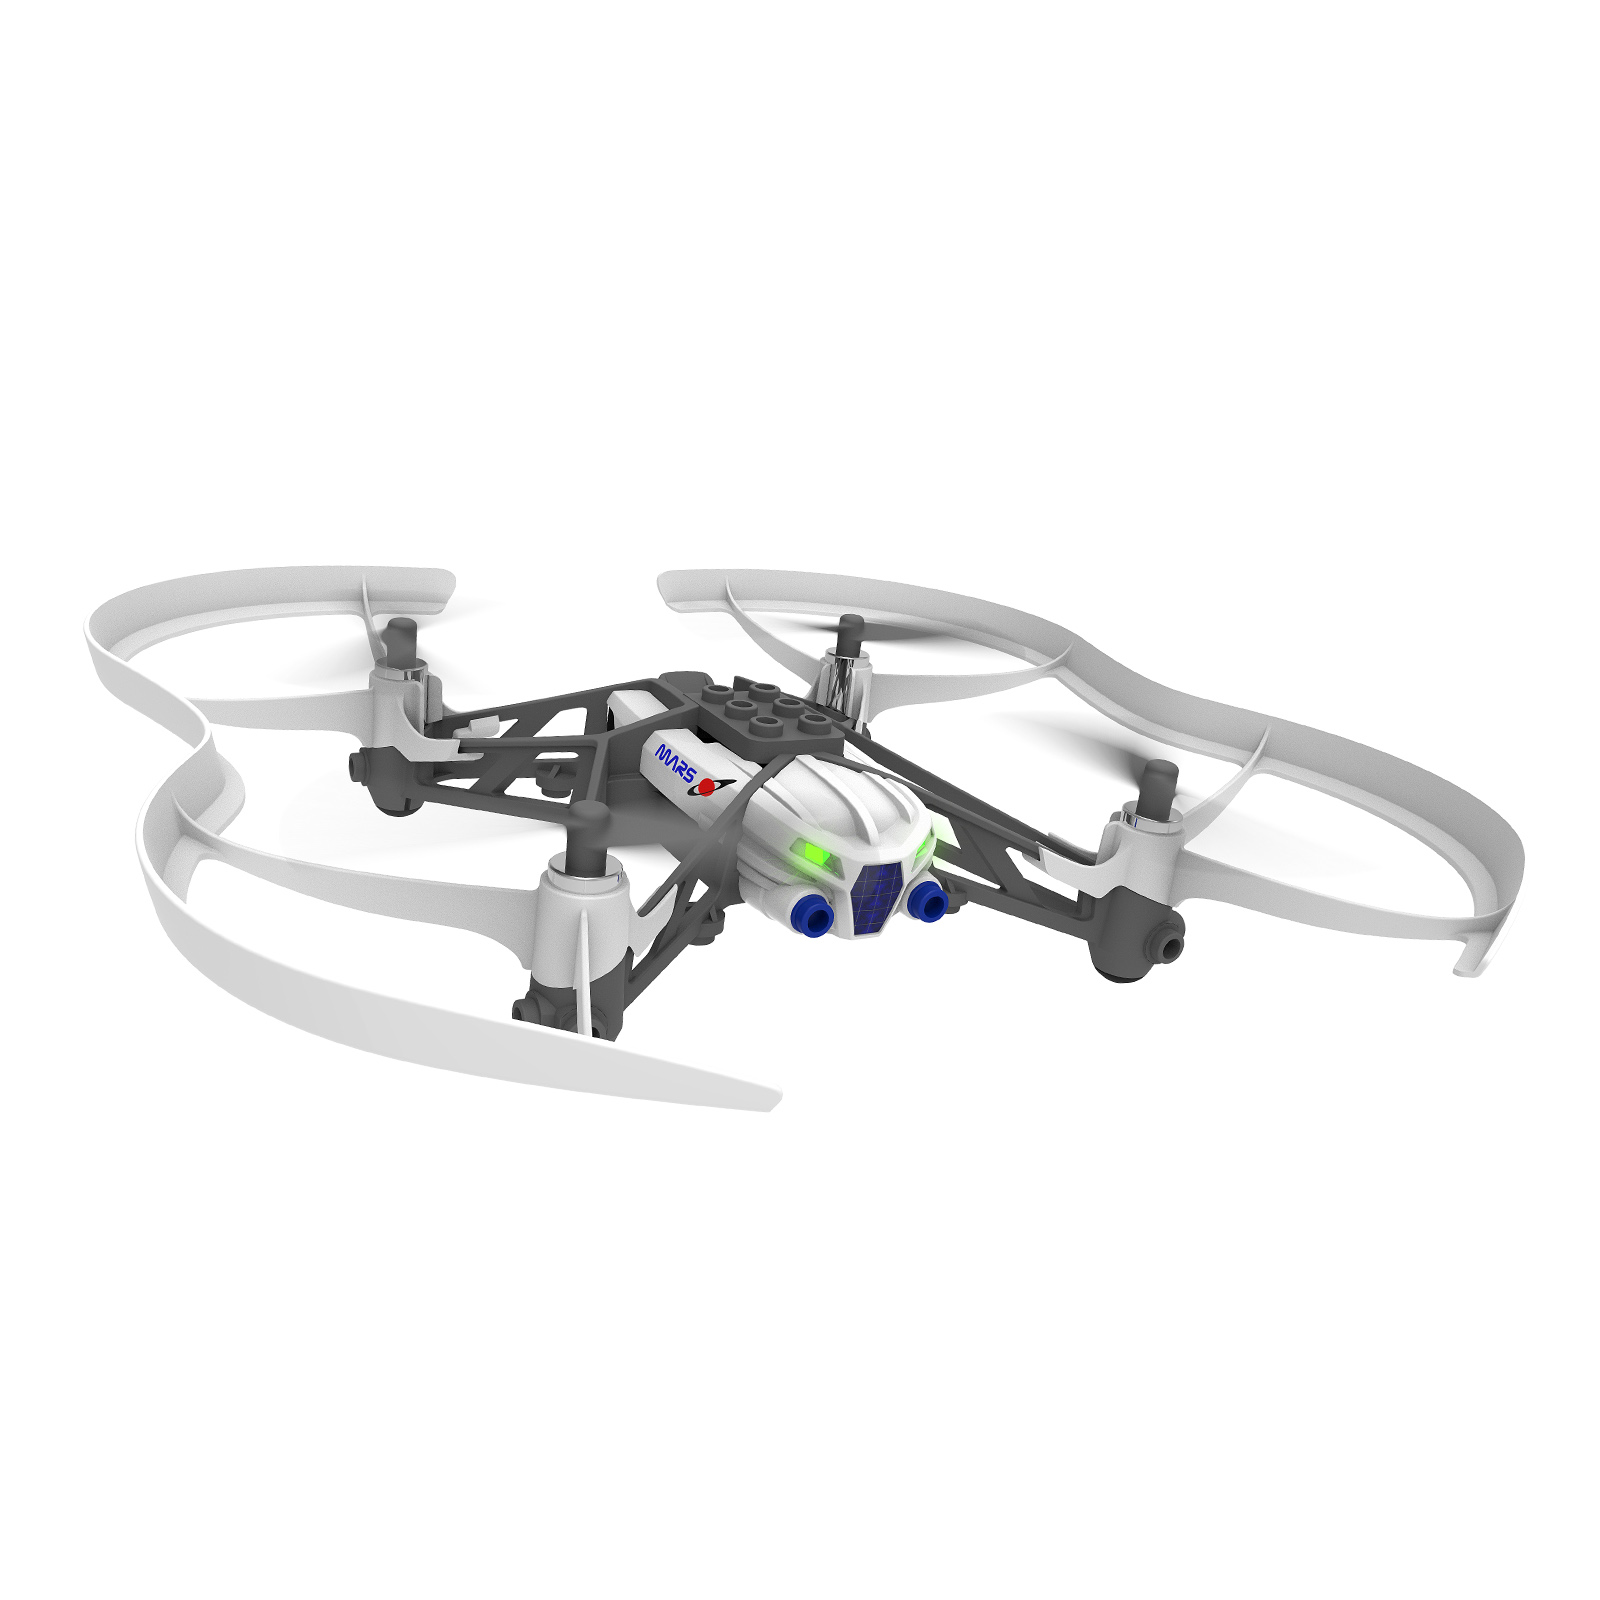 Parrot Airborne Night Maclane or Cargo Mini Drone 9868741